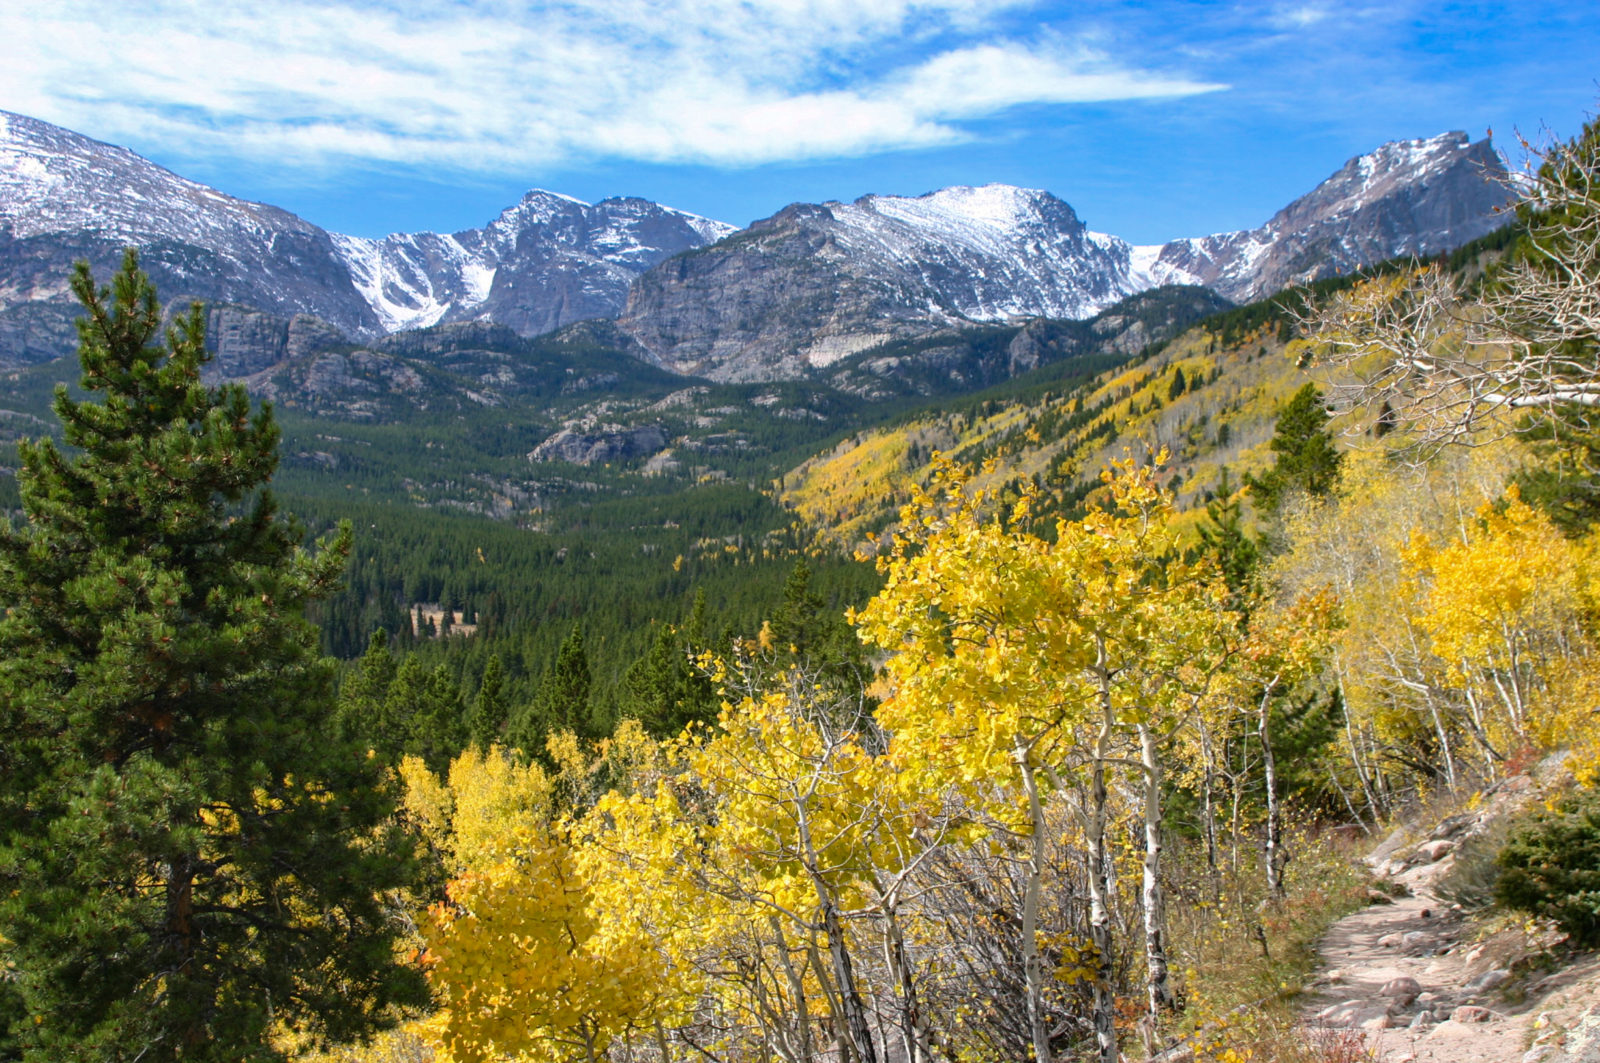 Golden Aspen in the Rocky Mountains